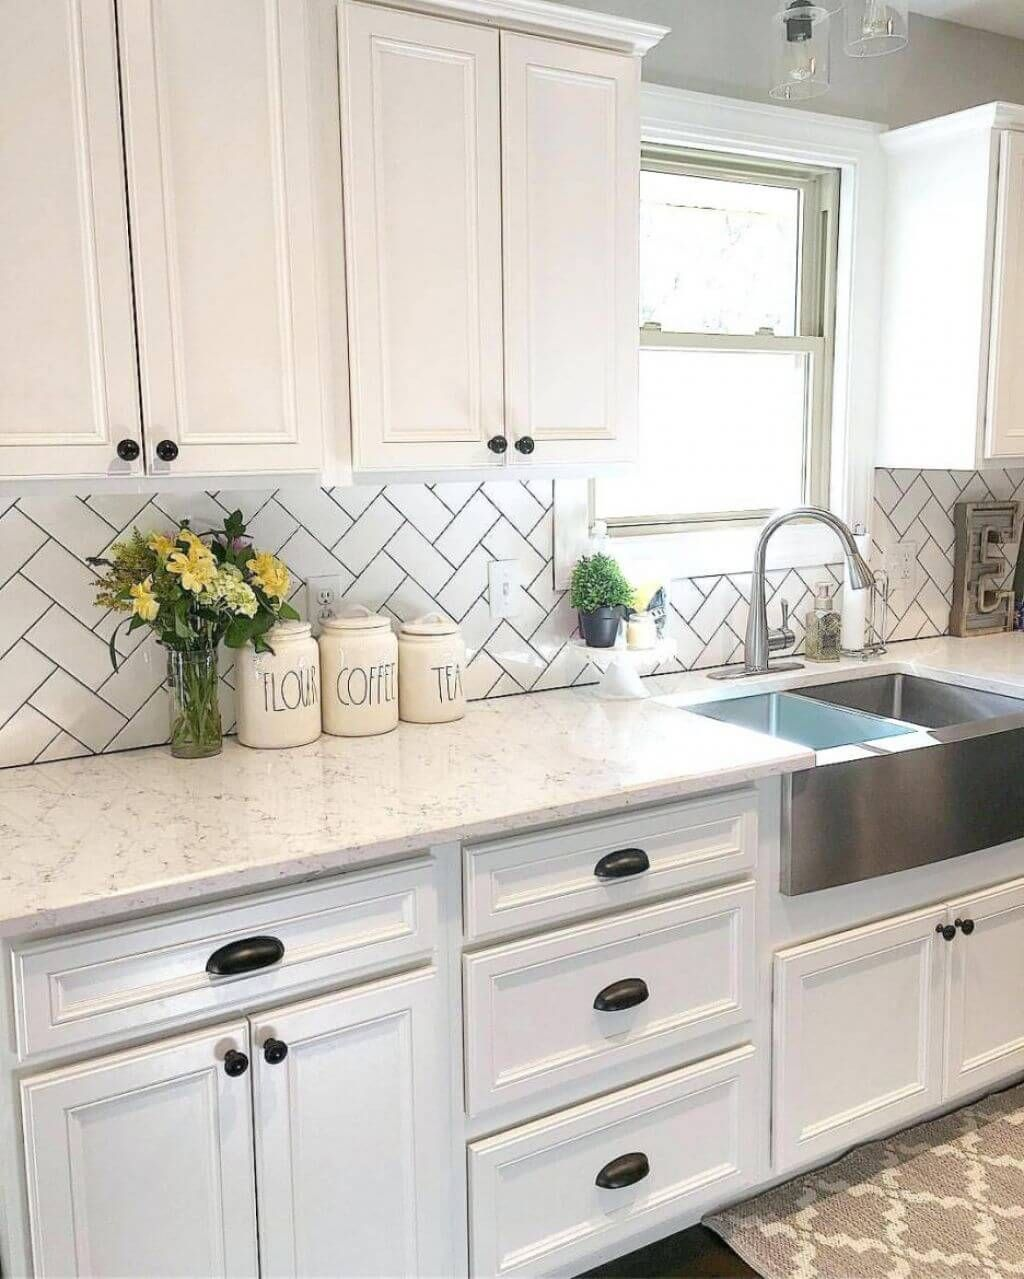 10 Country Kitchen Cabinet Ideas 2021 The Homey Model Kitchen Cabinets Decor Kitchen Cabinet Design Backsplash For White Cabinets